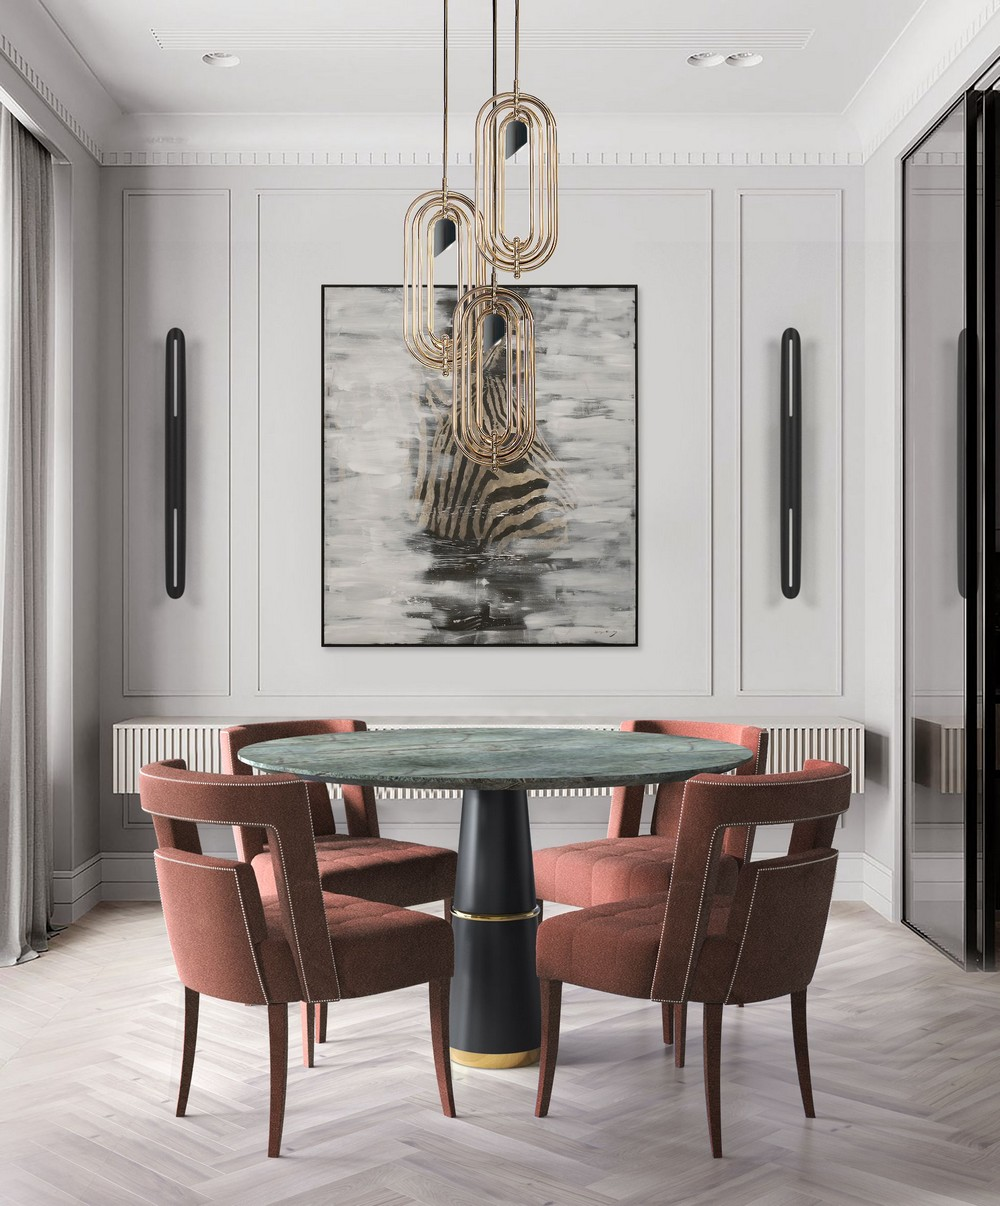 Elevate Your Dining Room With These Colorful Luxury Furniture dining room Elevate Your Dining Room With These Colorful Luxury Furniture elevate your dining room with these colorful luxury furniture 11